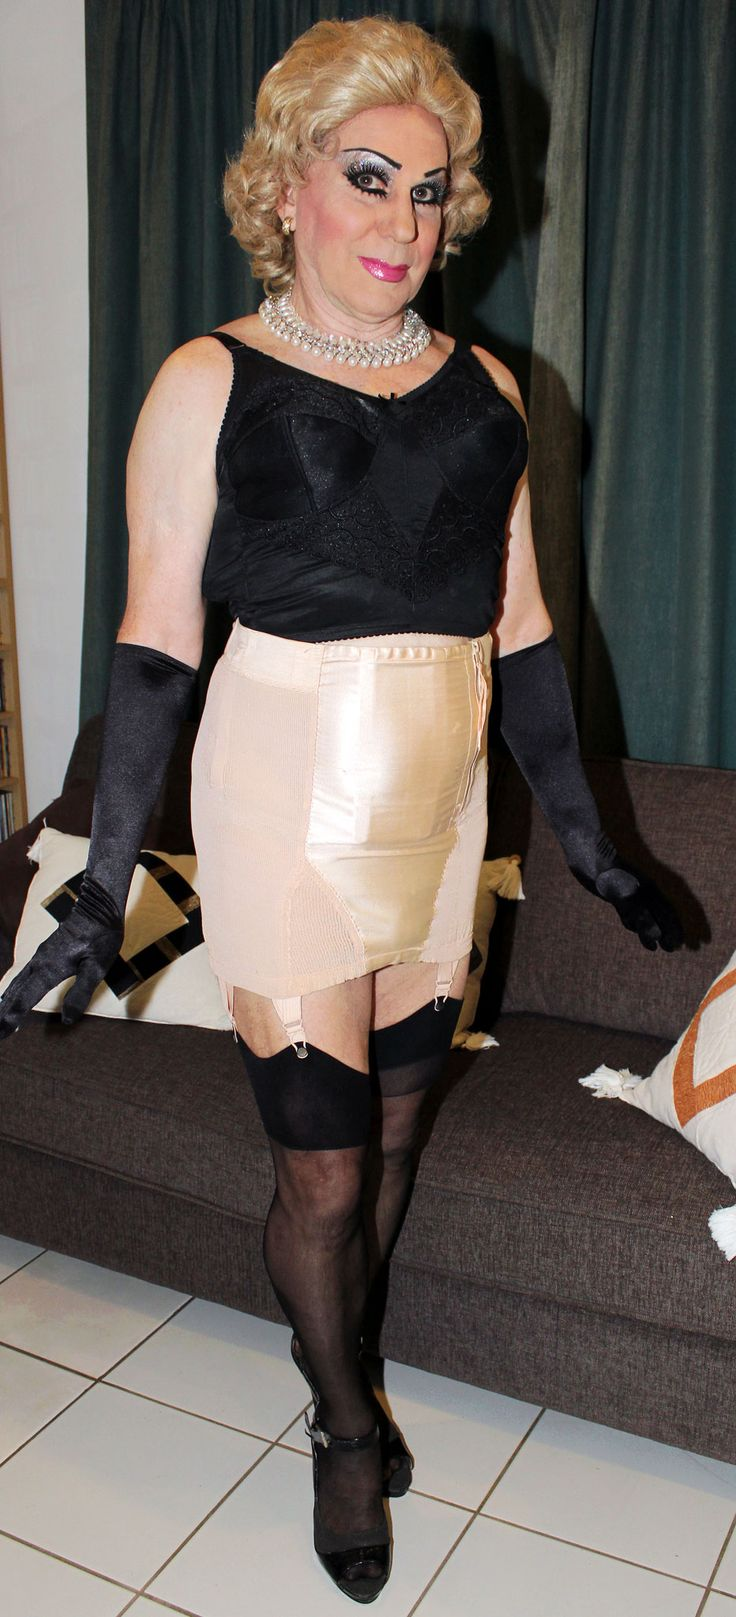 Sheer to waist pantyhose tgp